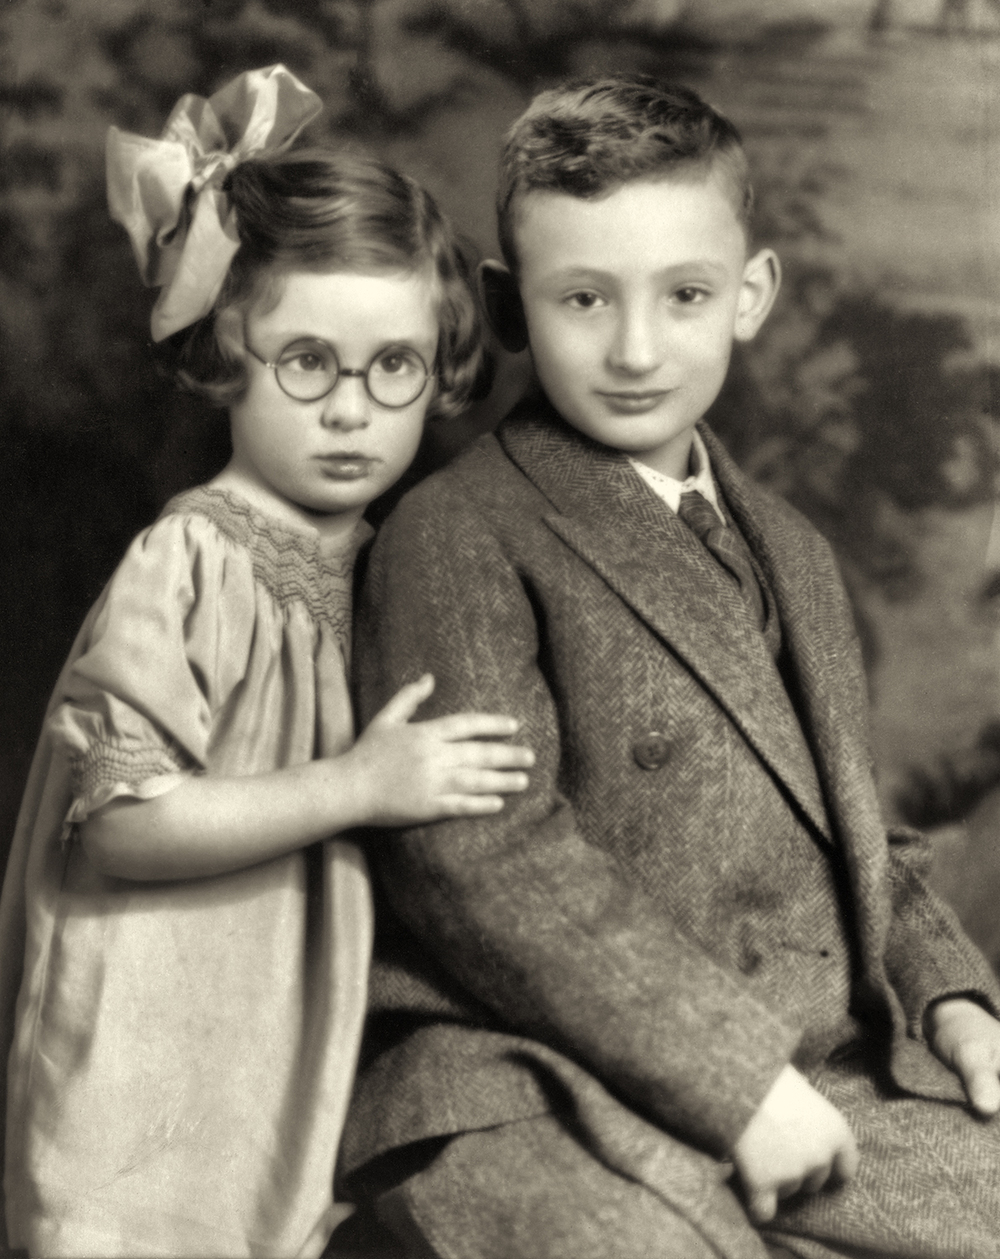 Lillian and Bernard Finestone